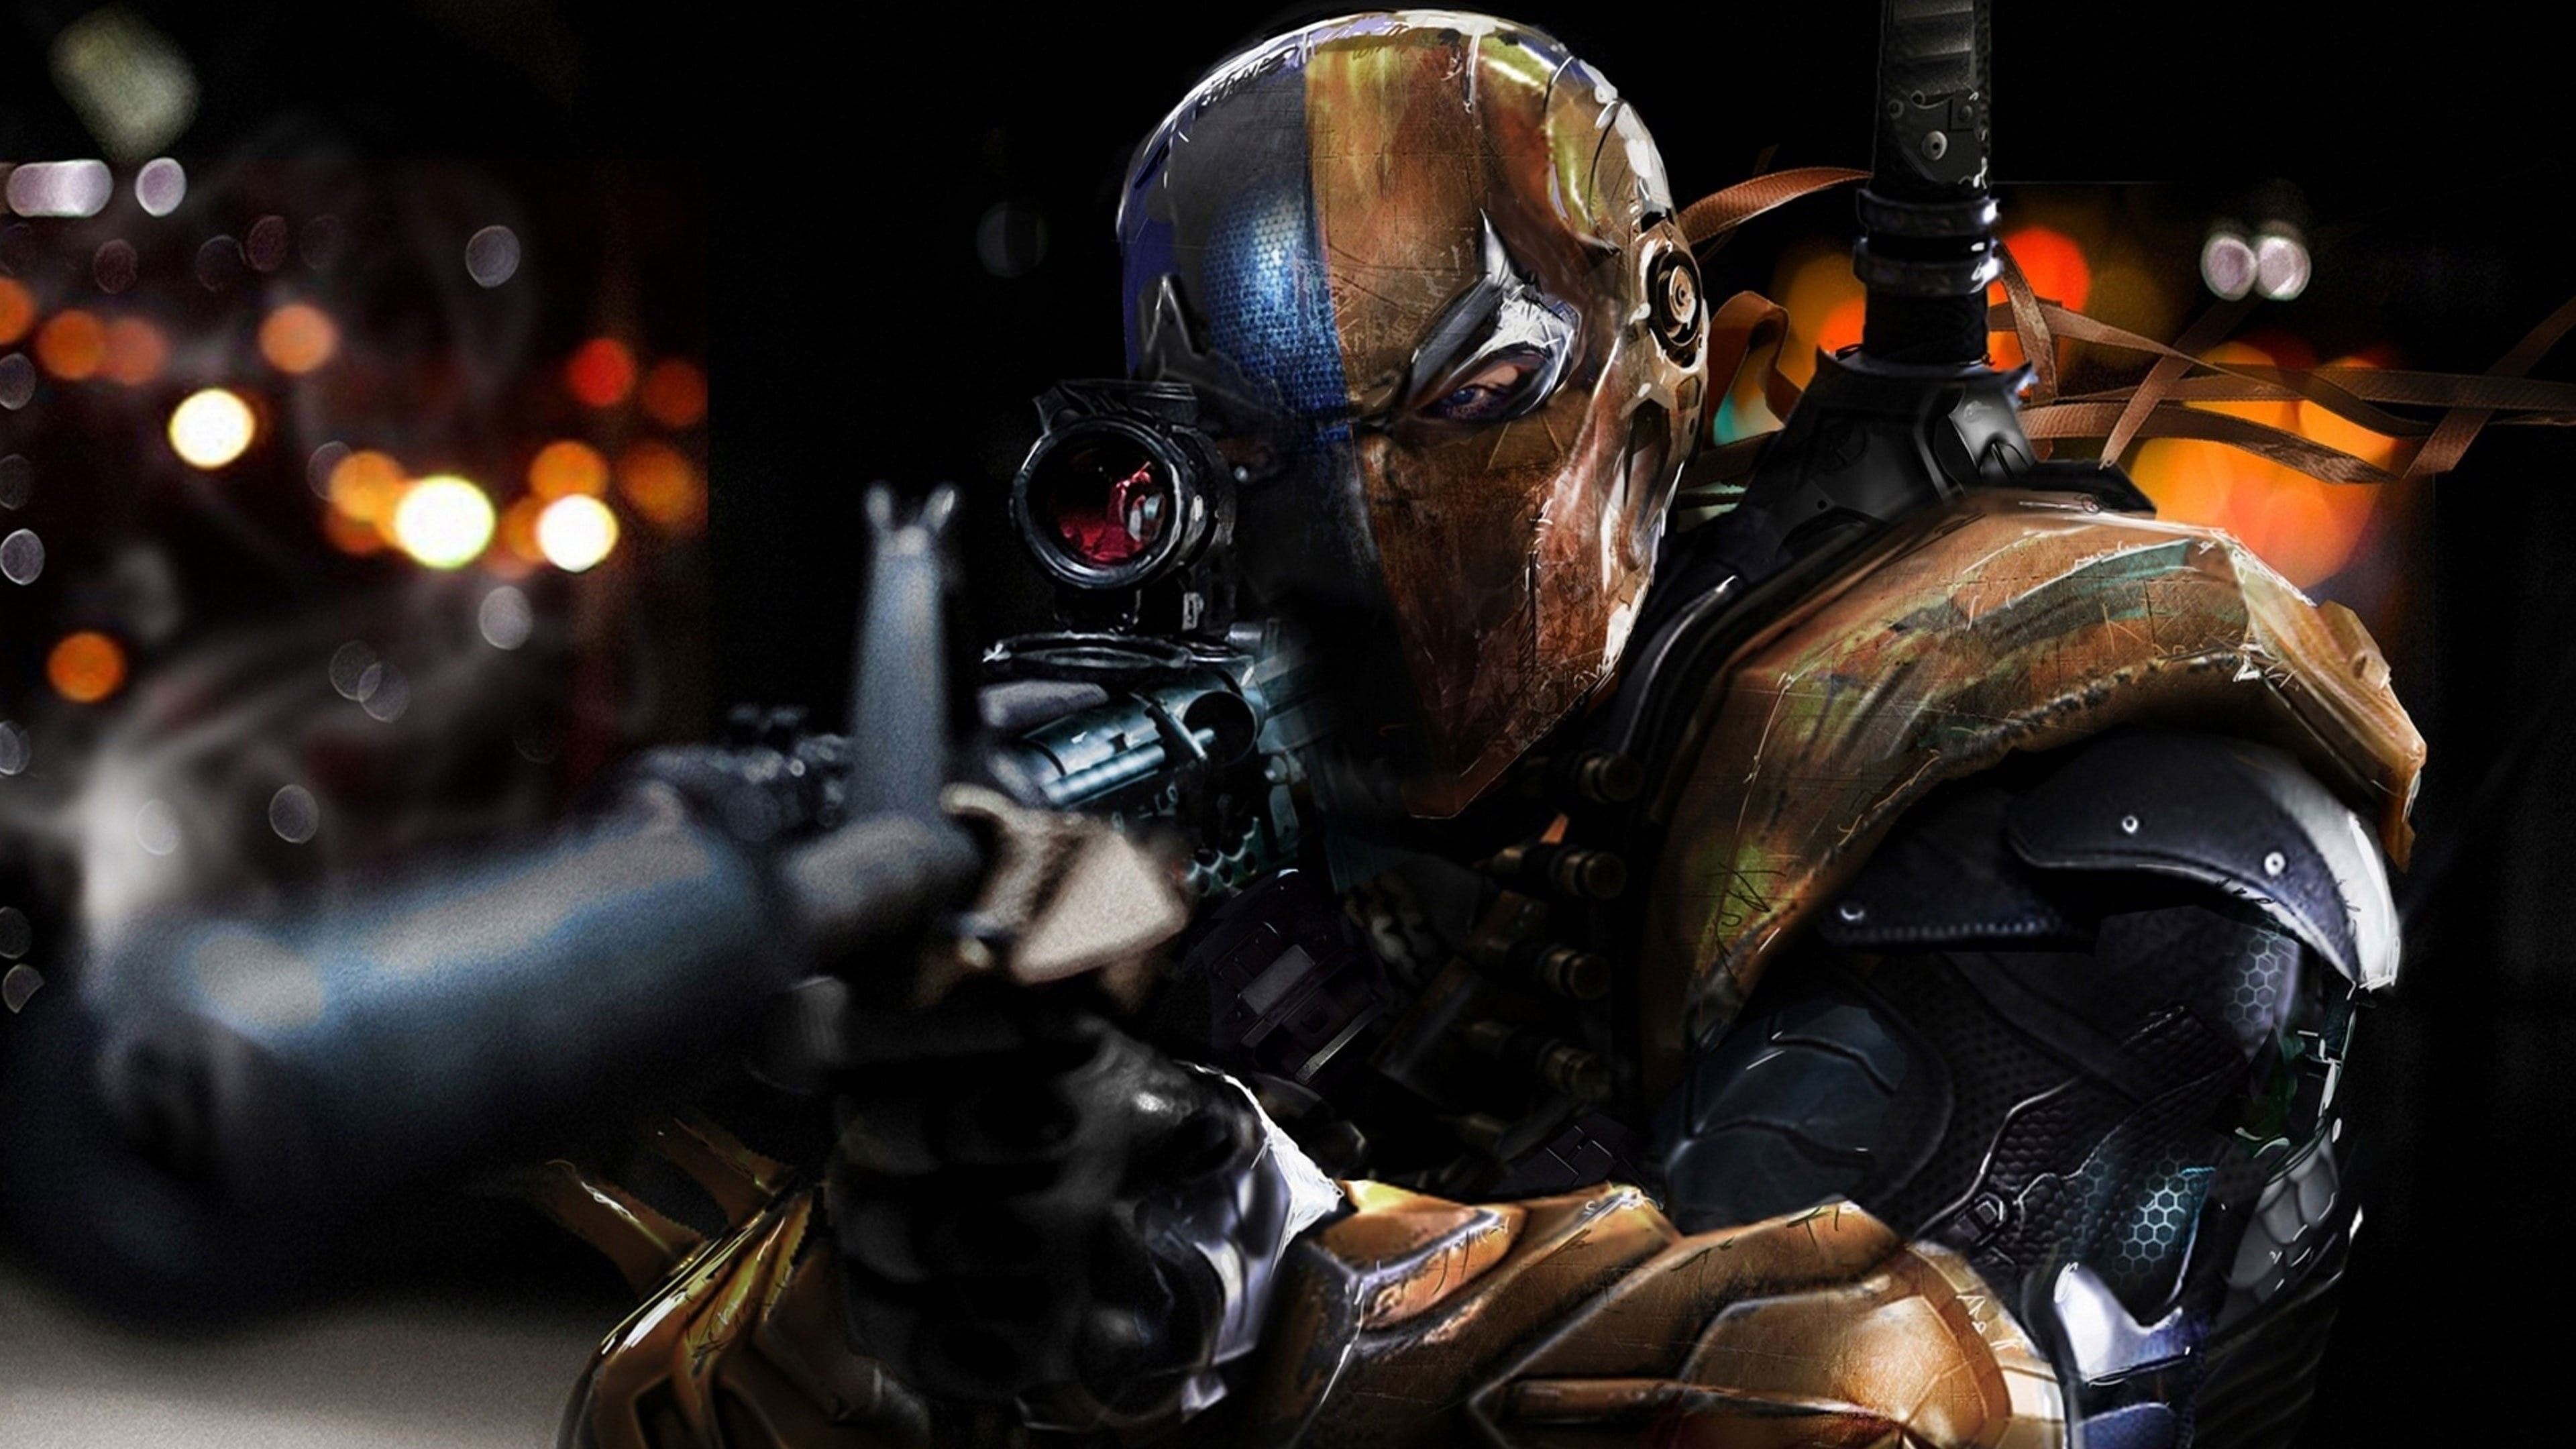 3840x2160 Gaming Deathstroke Batman Arkham Origins - Image #1345 - Licence: Free for  Personal Use